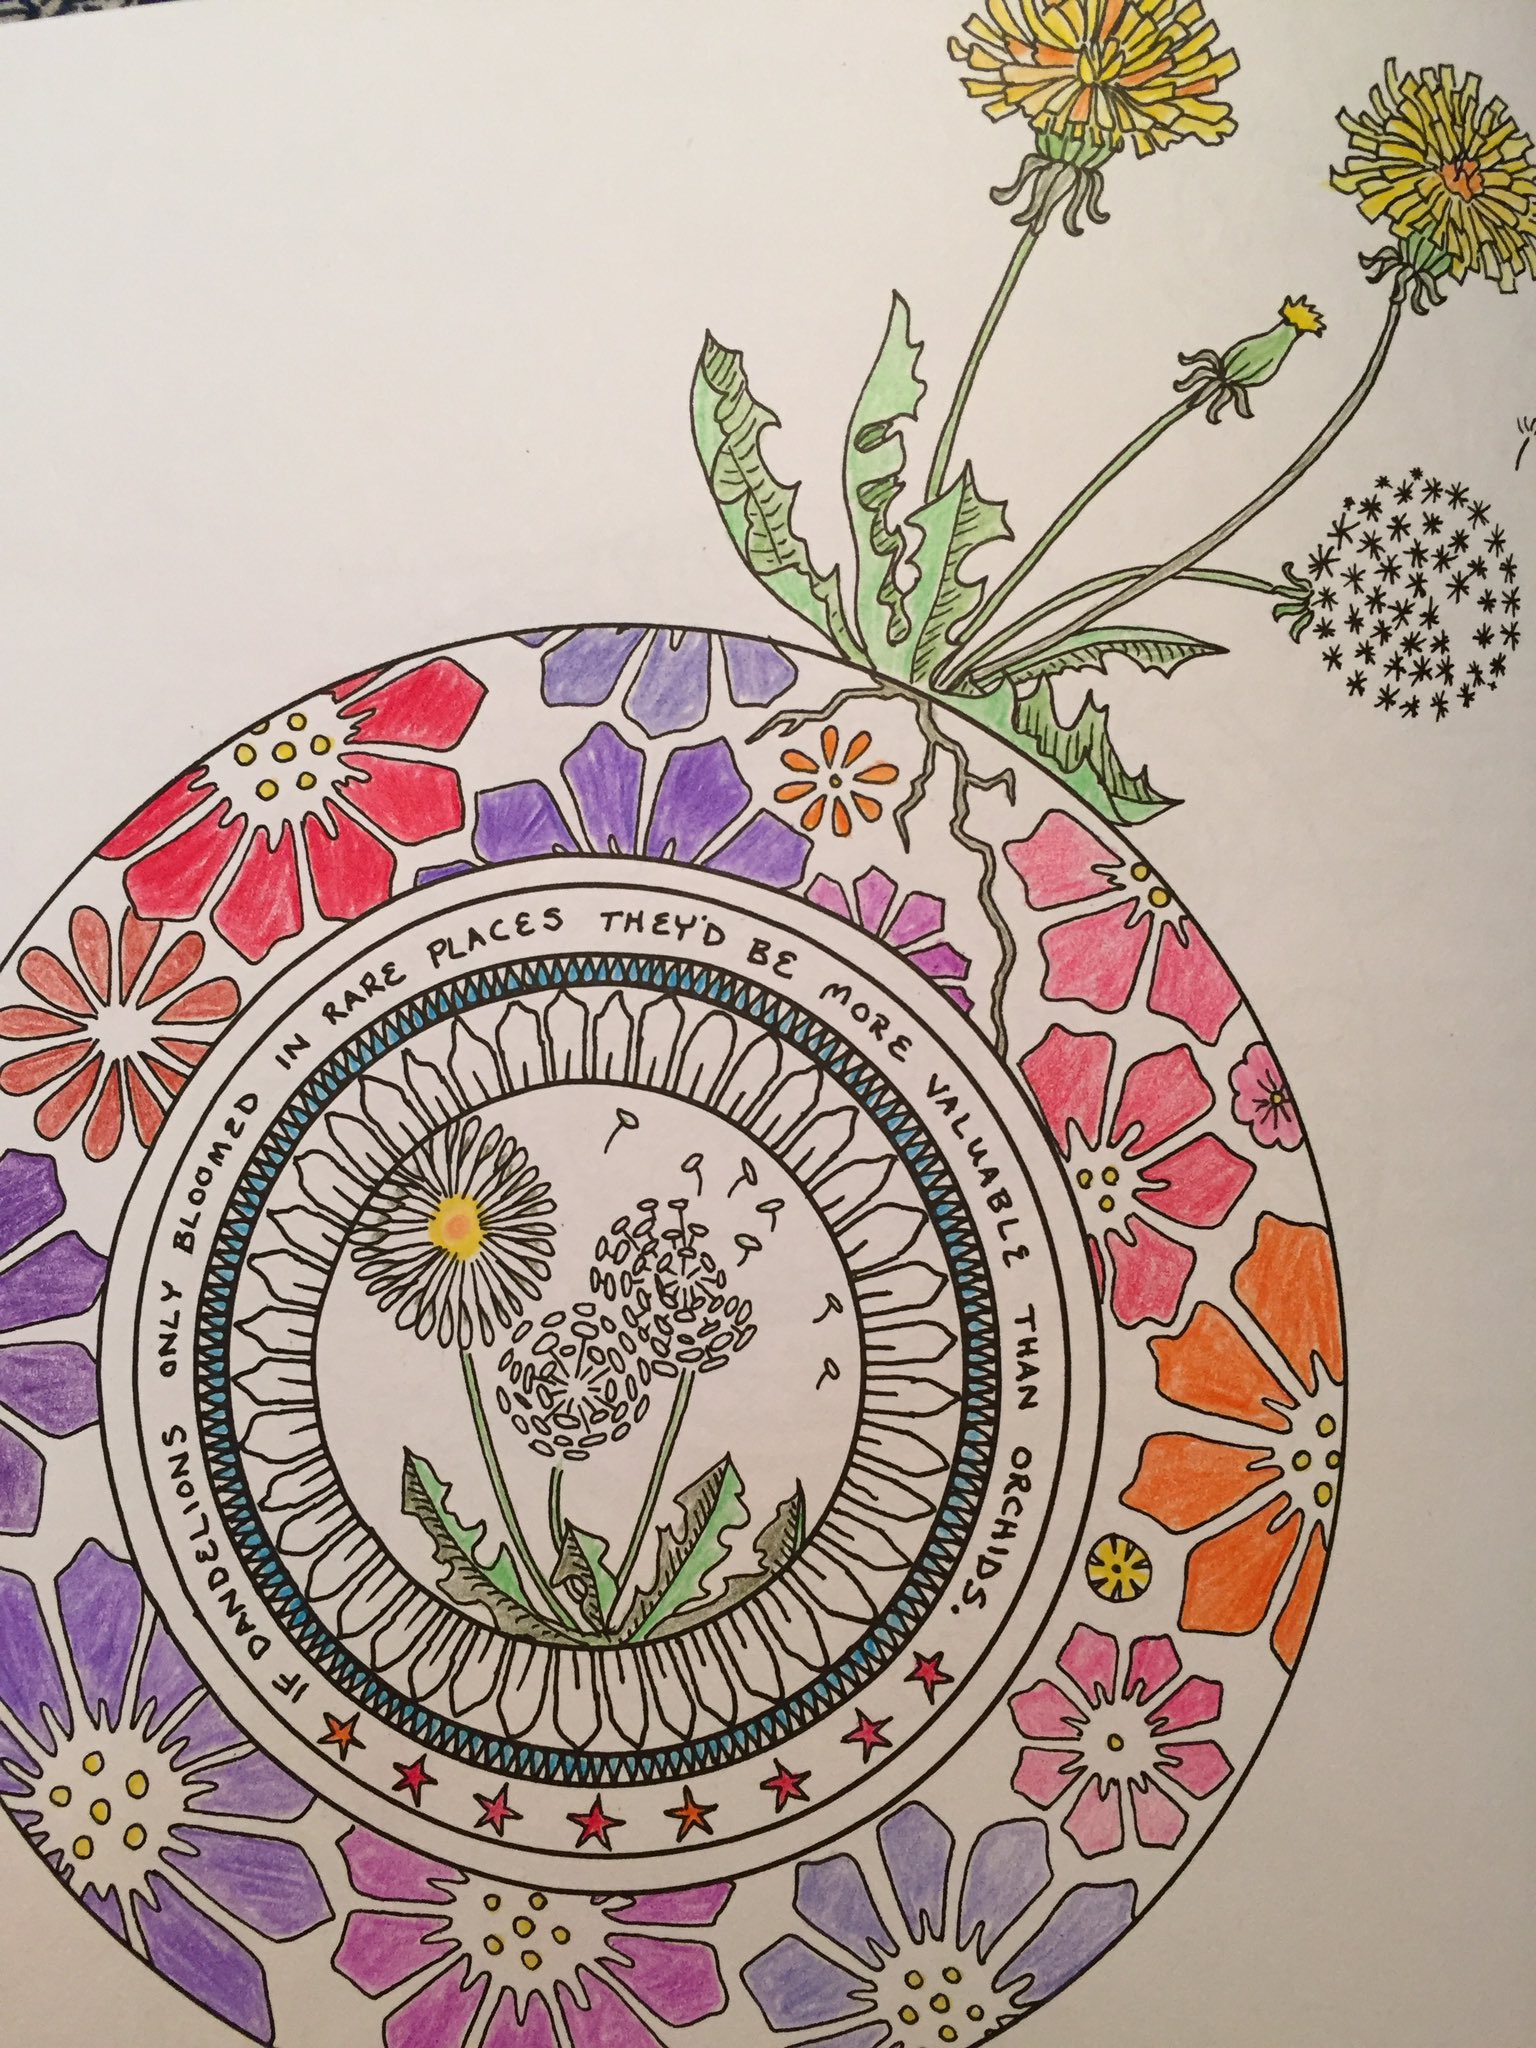 First page colored from @TheBloggess #YouAreHere  Dandelions are a blessing that spread with a wish. https://t.co/EFaKxEdJAK